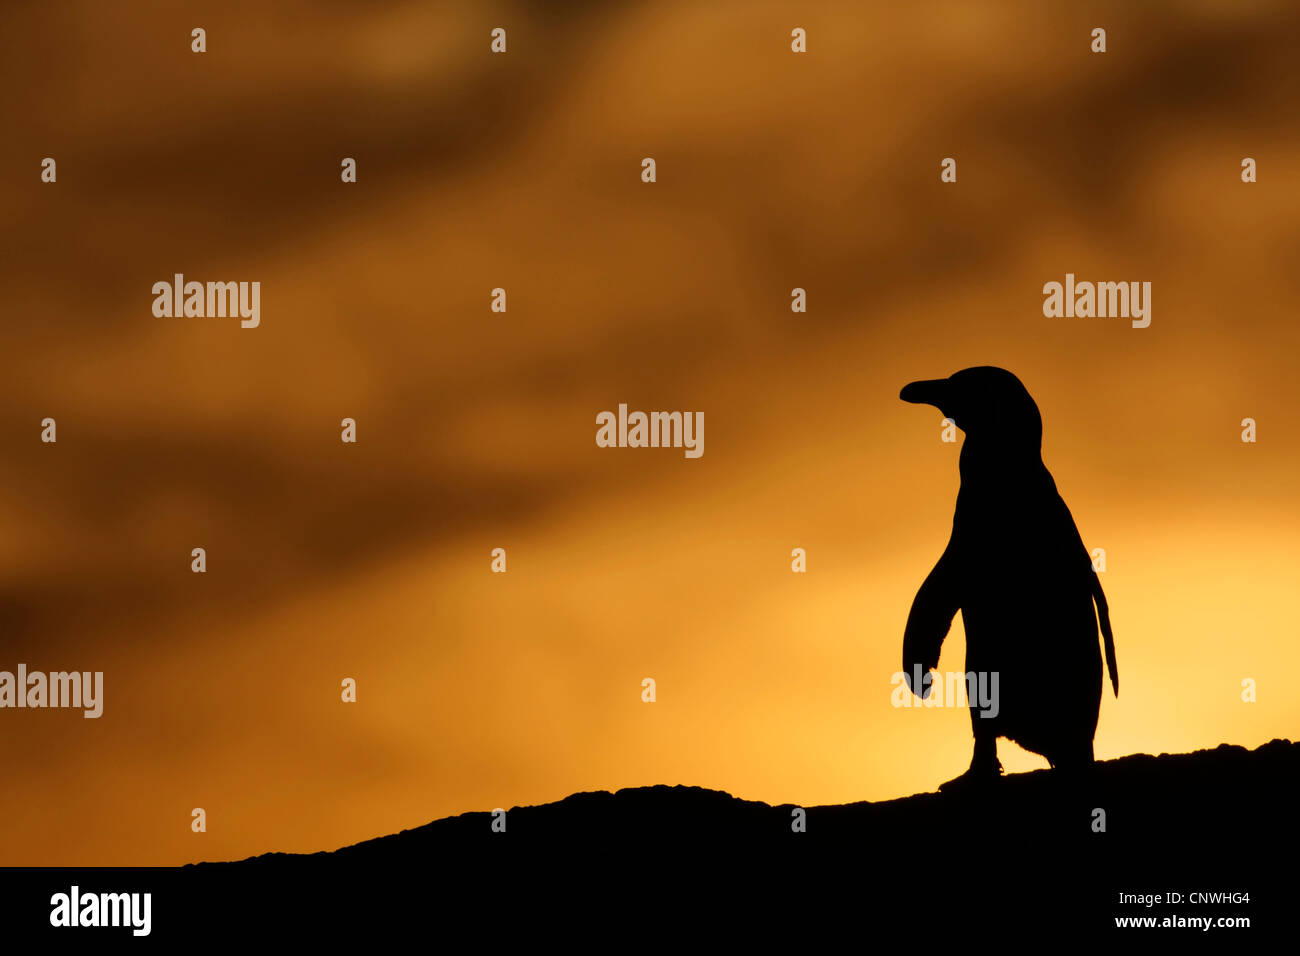 jackass penguin, African penguin, black-footed penguin (Spheniscus demersus), at sunset, South Africa, West Cape, - Stock Image